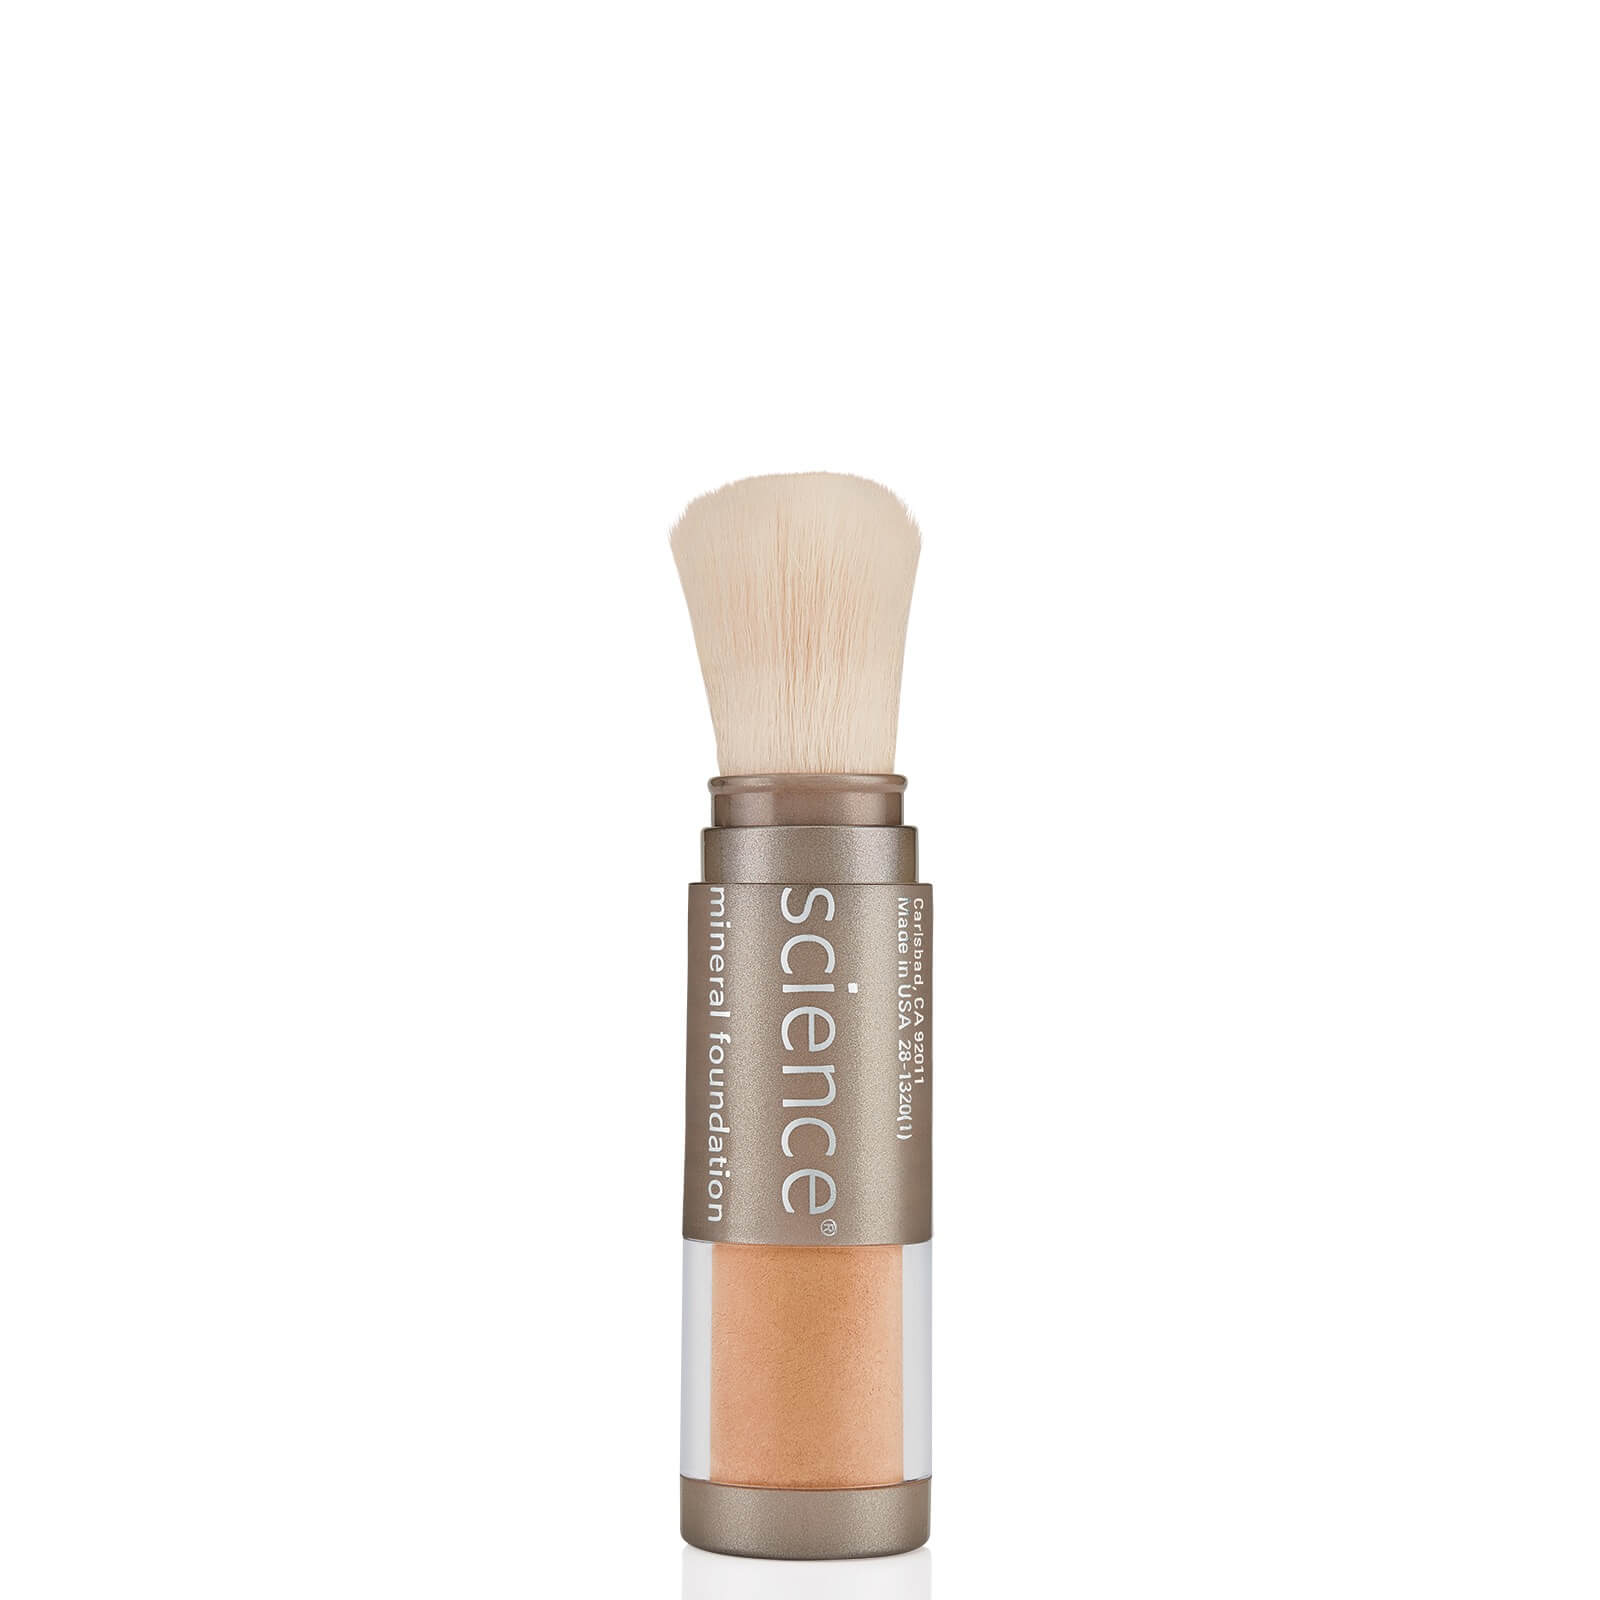 Colorescience Brush On Foundation SPF 20